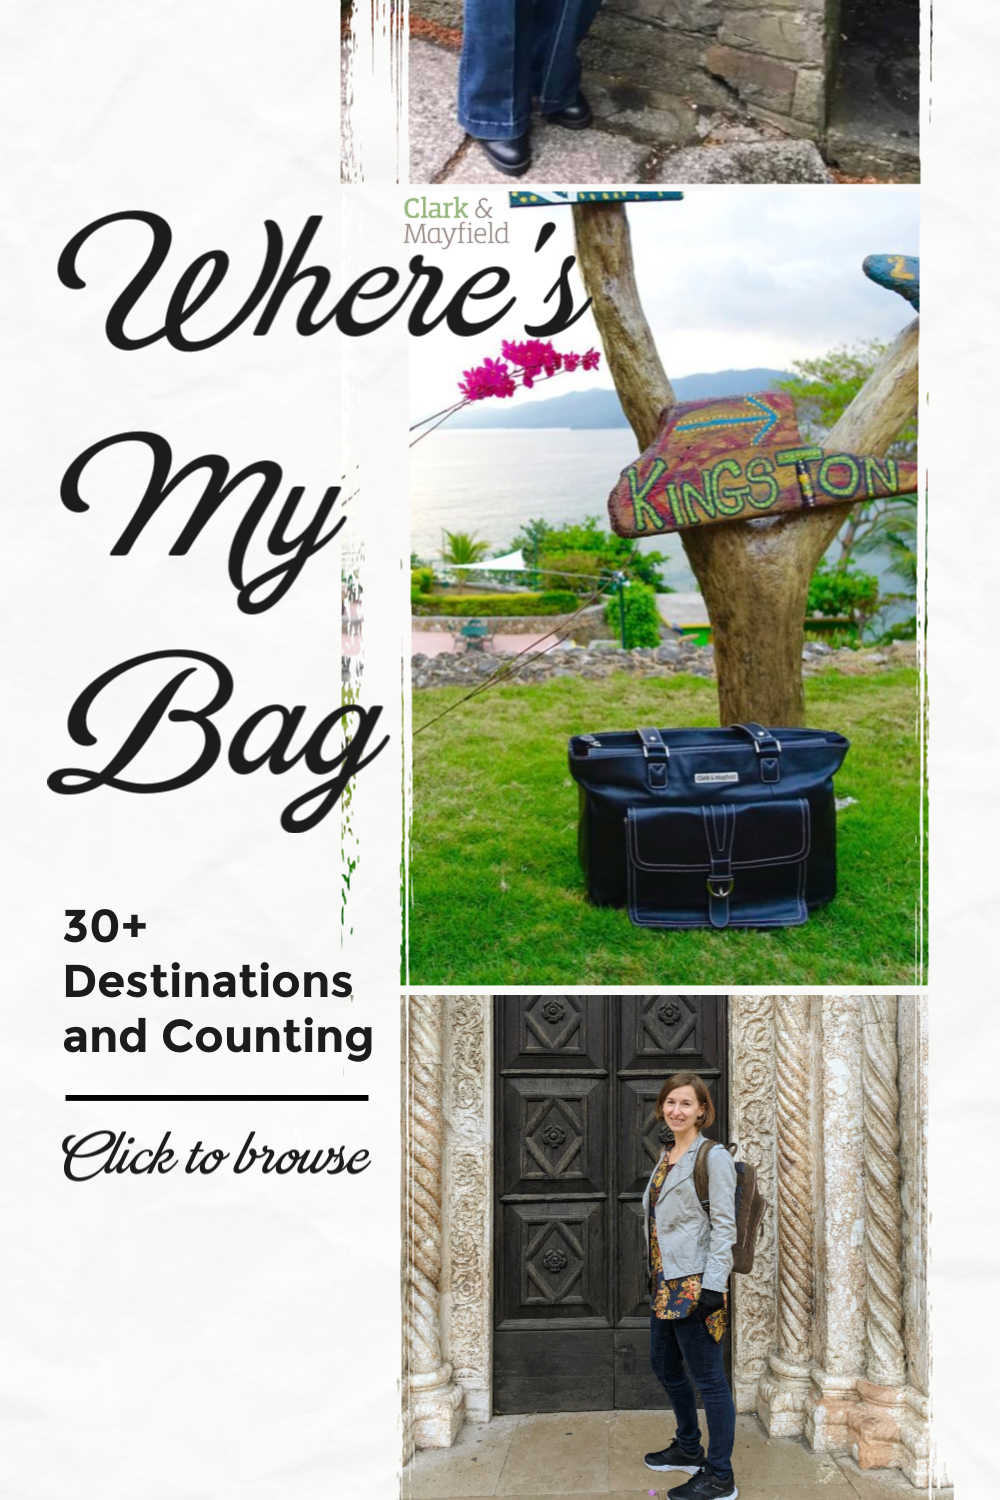 Clark & Mayfield's laptop bags are traveling the world in our Where's My Bag series, with 30 travel destinations and counting! Visit our blog to browse travel pics and learn about our beautiful travel laptop bags.